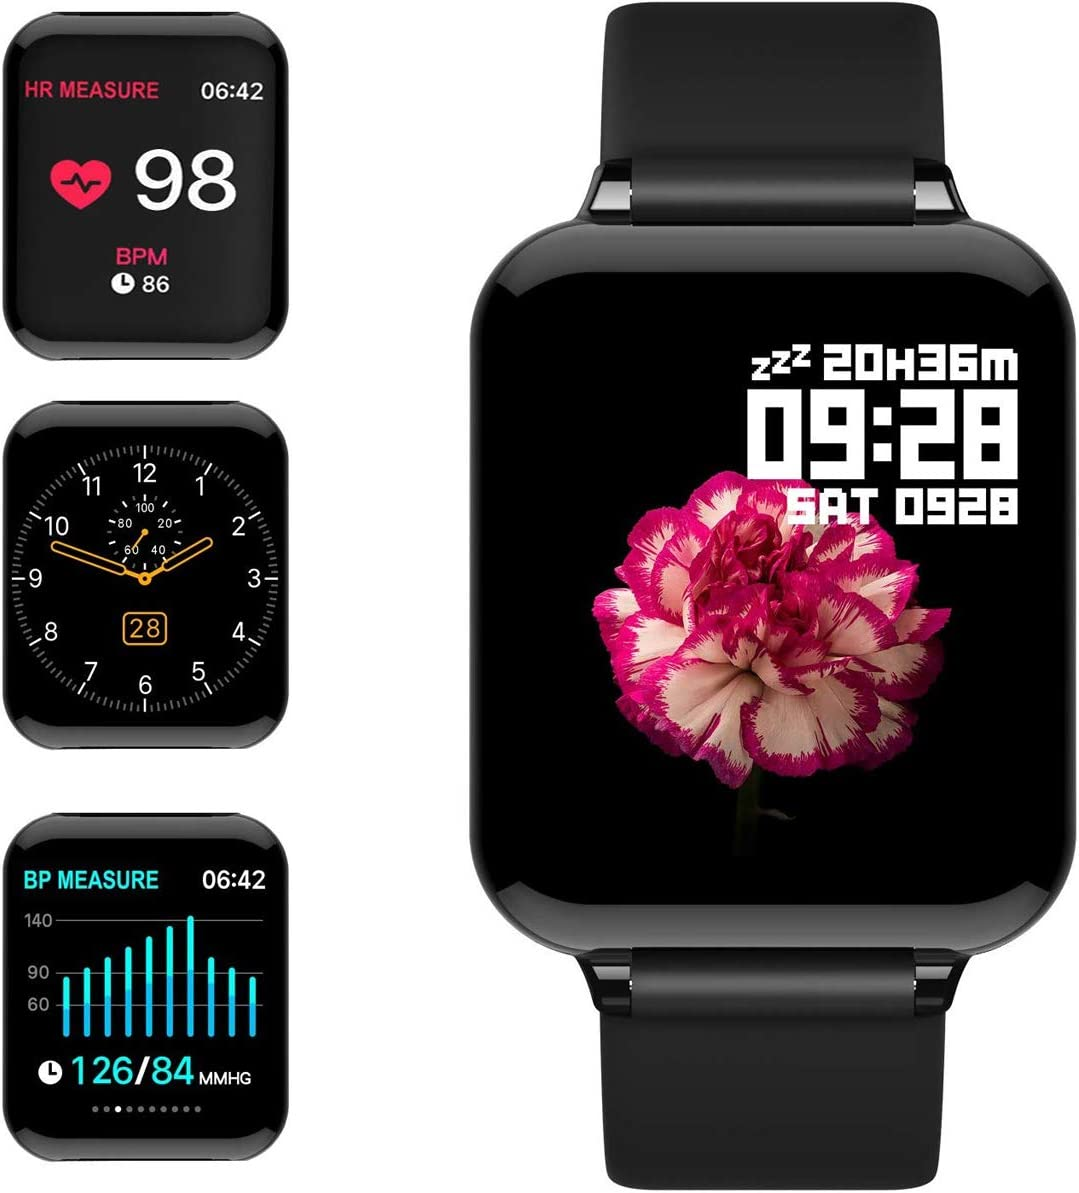 Fitness Tracker Activity Tracker with Heart Rate Monitor 1.3 Color Screen with Blood Pressure Sleep Monitor Step Calorie Counter Waterproof Band for Men Women Kids feifuns Smart Watch